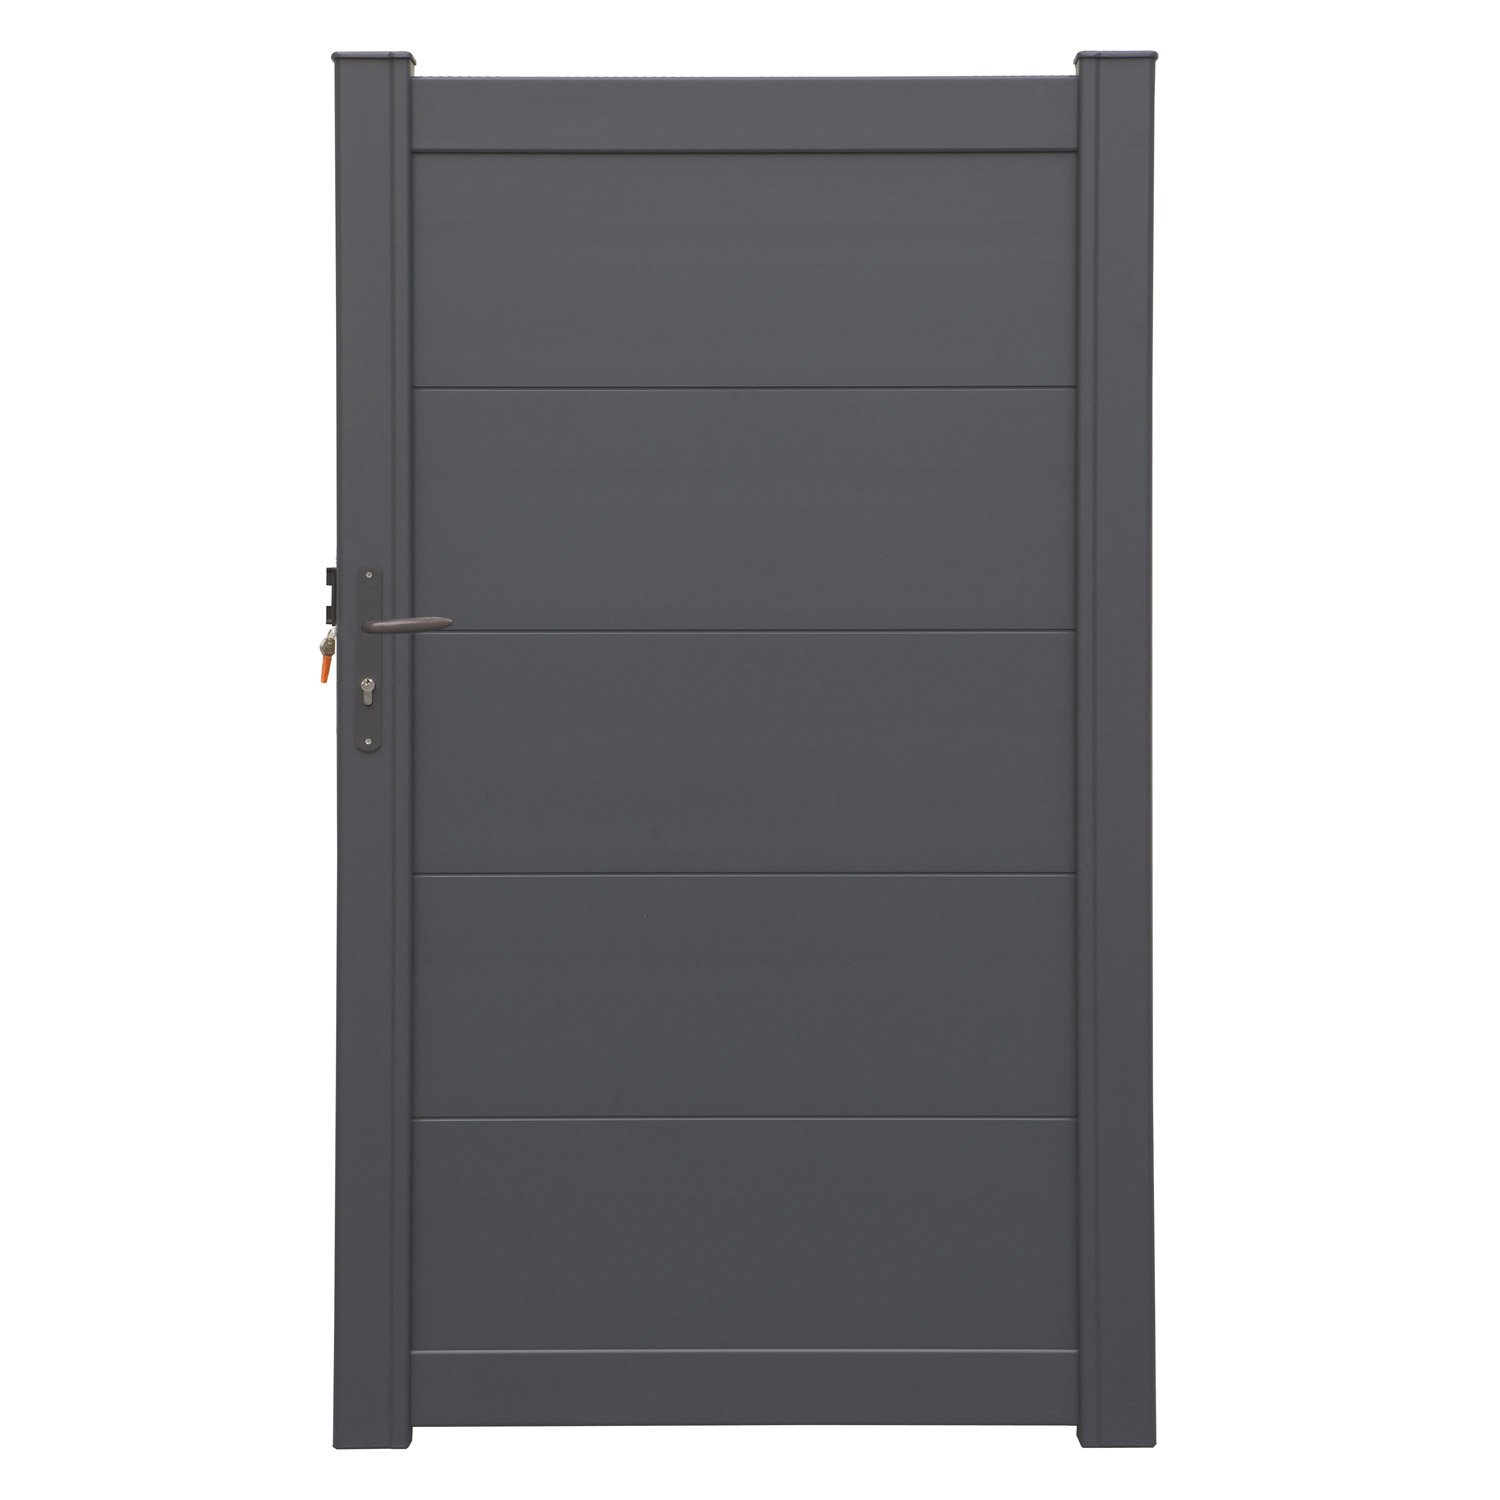 portail aluminium brico depot climatiseur mobile brico depot with portail aluminium brico depot. Black Bedroom Furniture Sets. Home Design Ideas